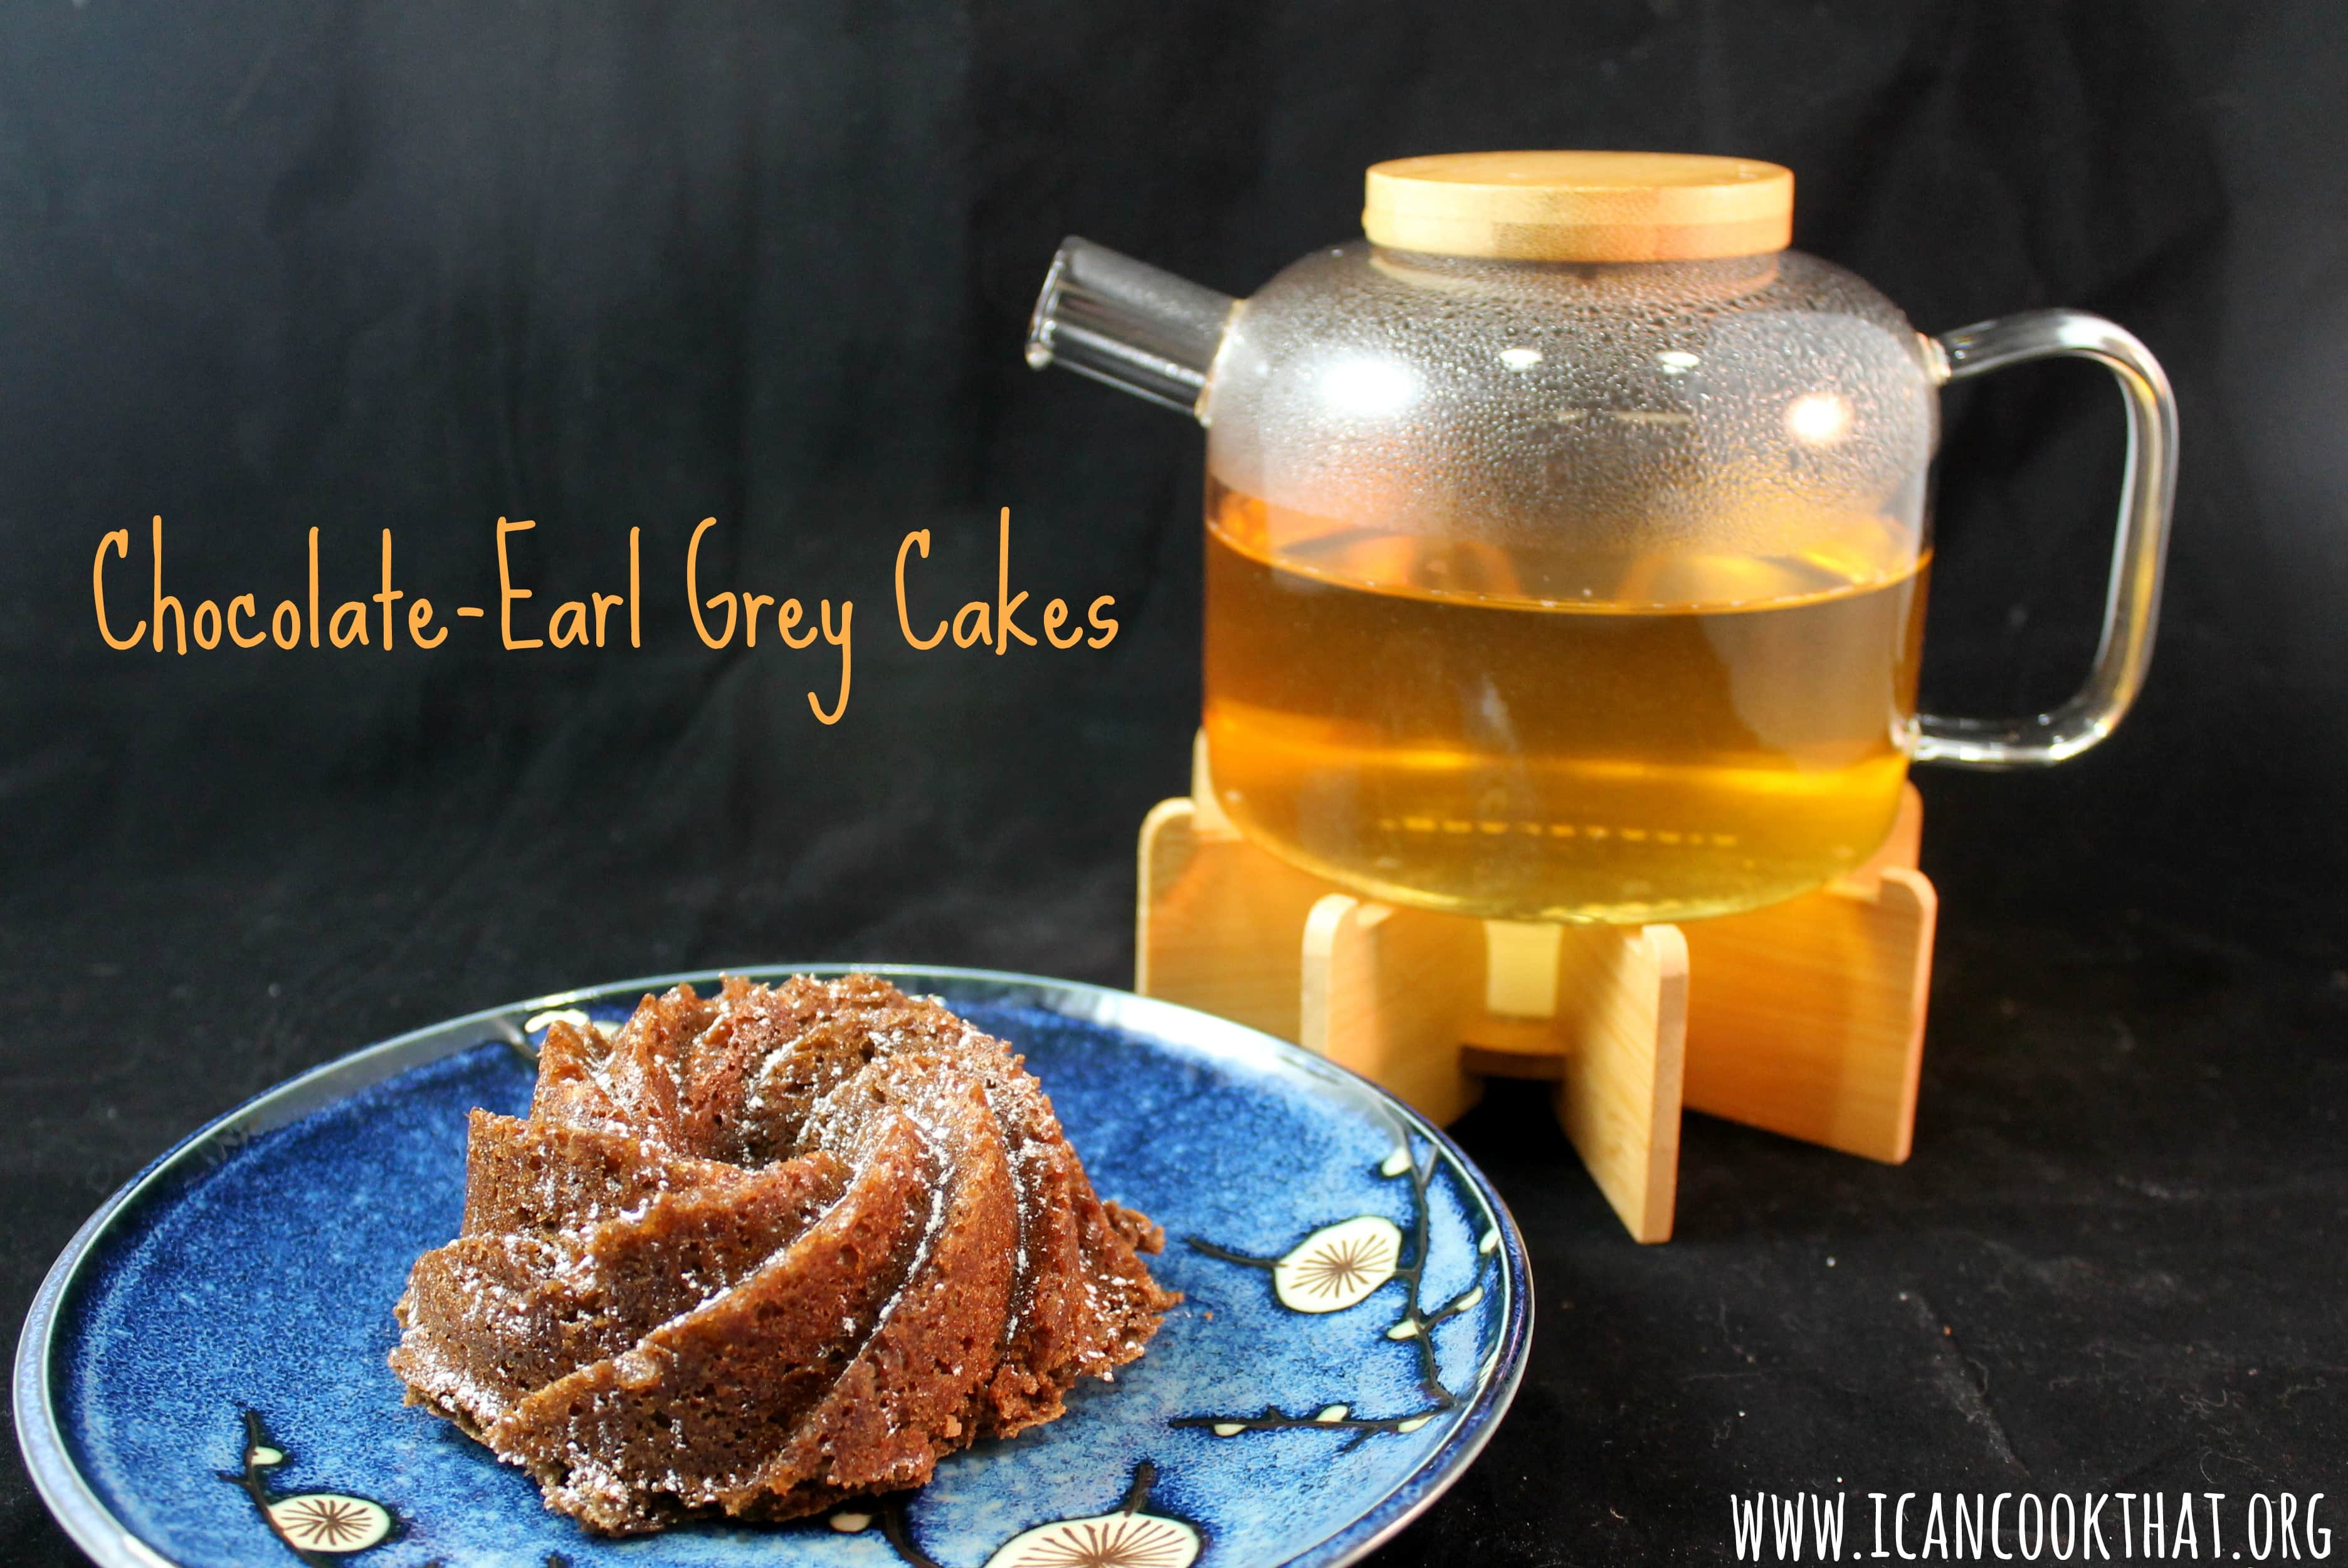 The Earl Grey flavor is subtle but it's definitely there. Who knew ...